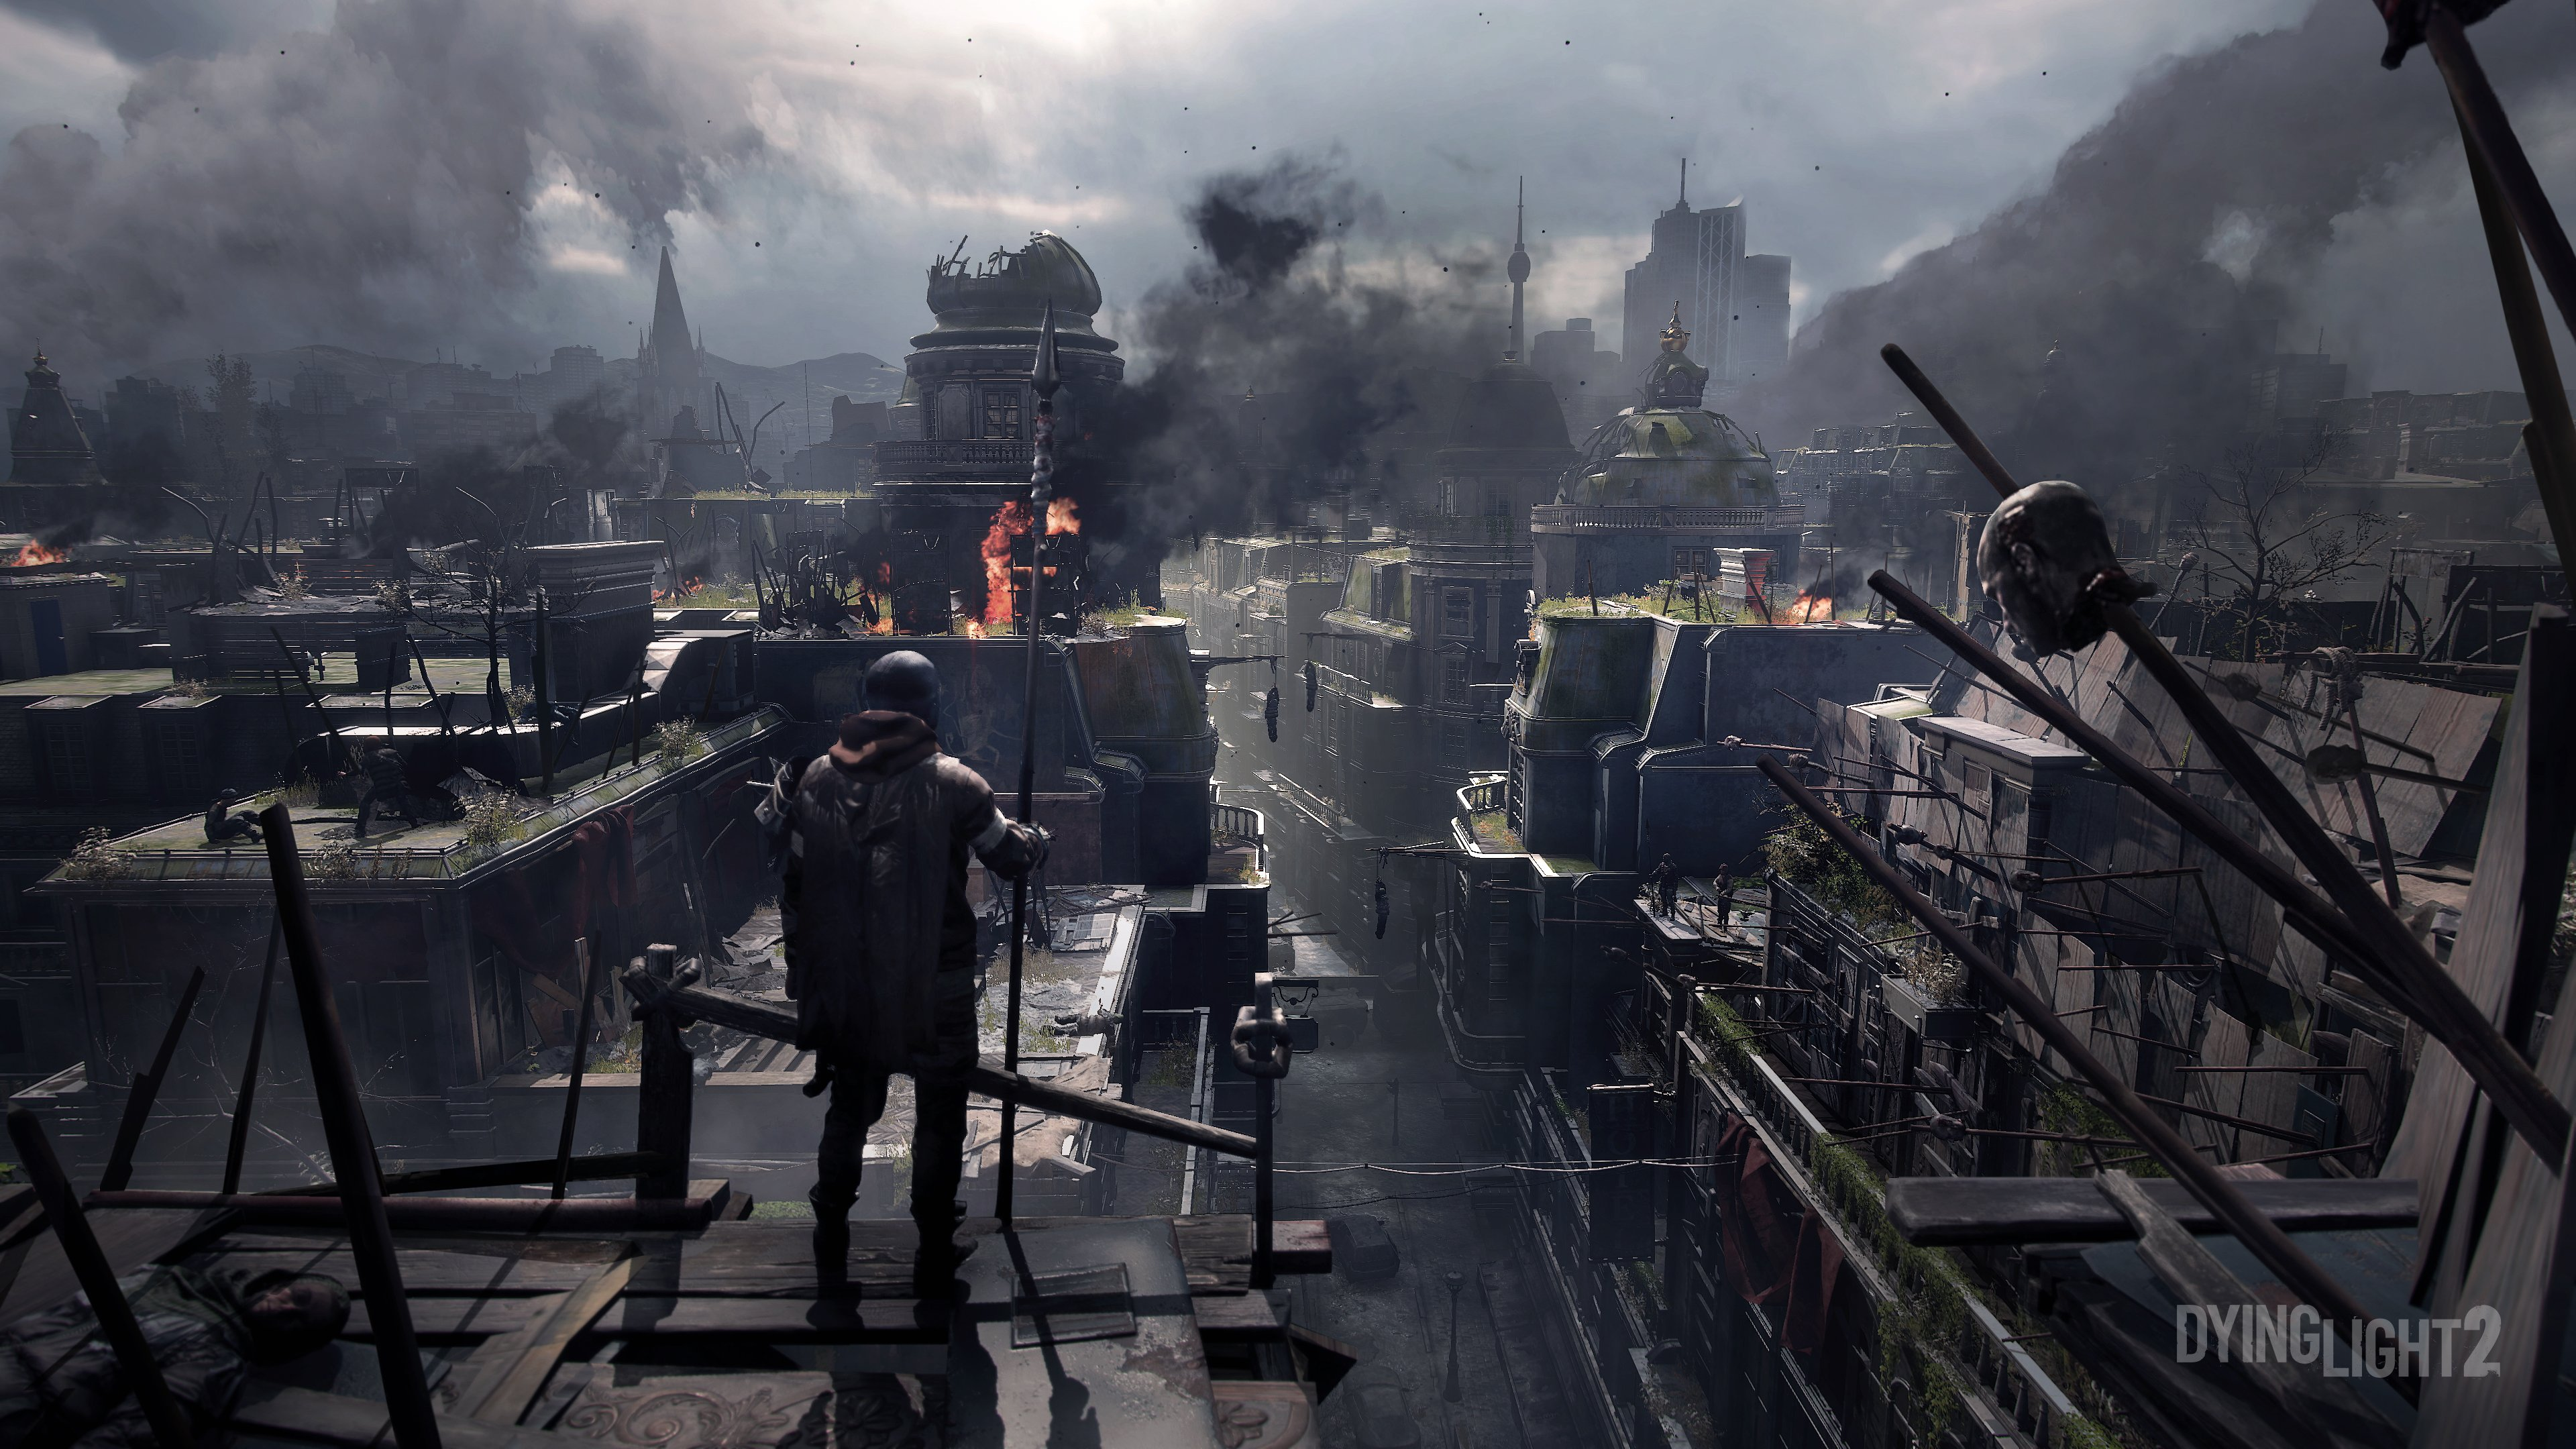 Dying Light 2 4k Hd Games 4k Wallpapers Images Backgrounds